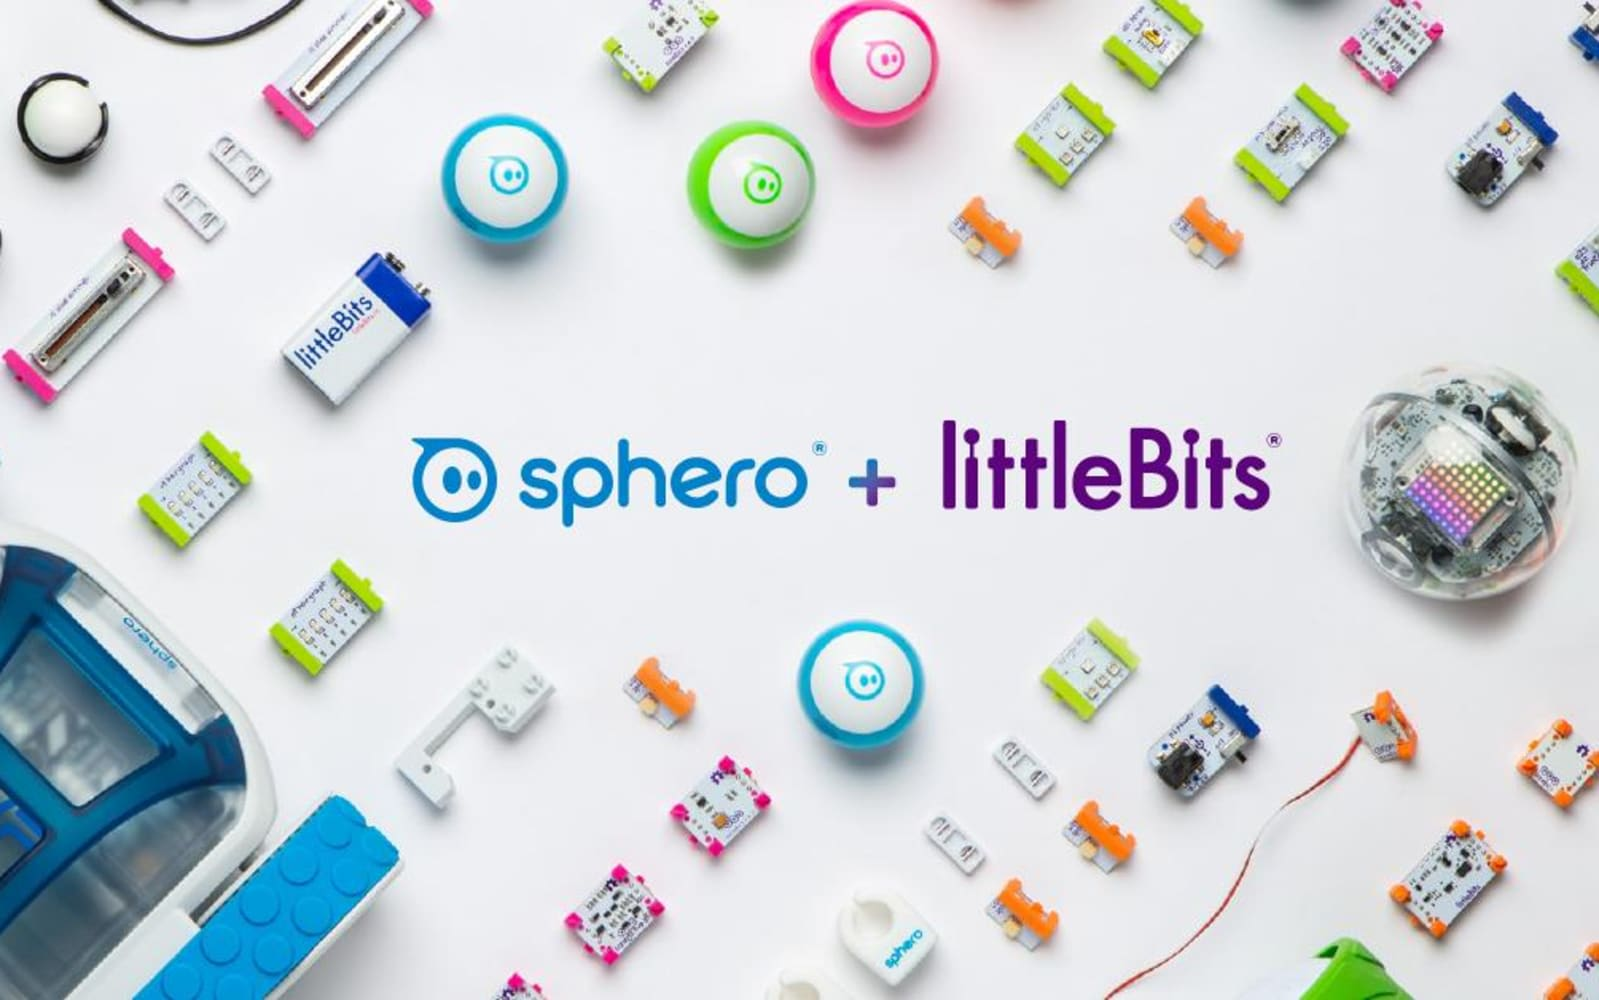 Sphero acquires LittleBits and eyes international growth